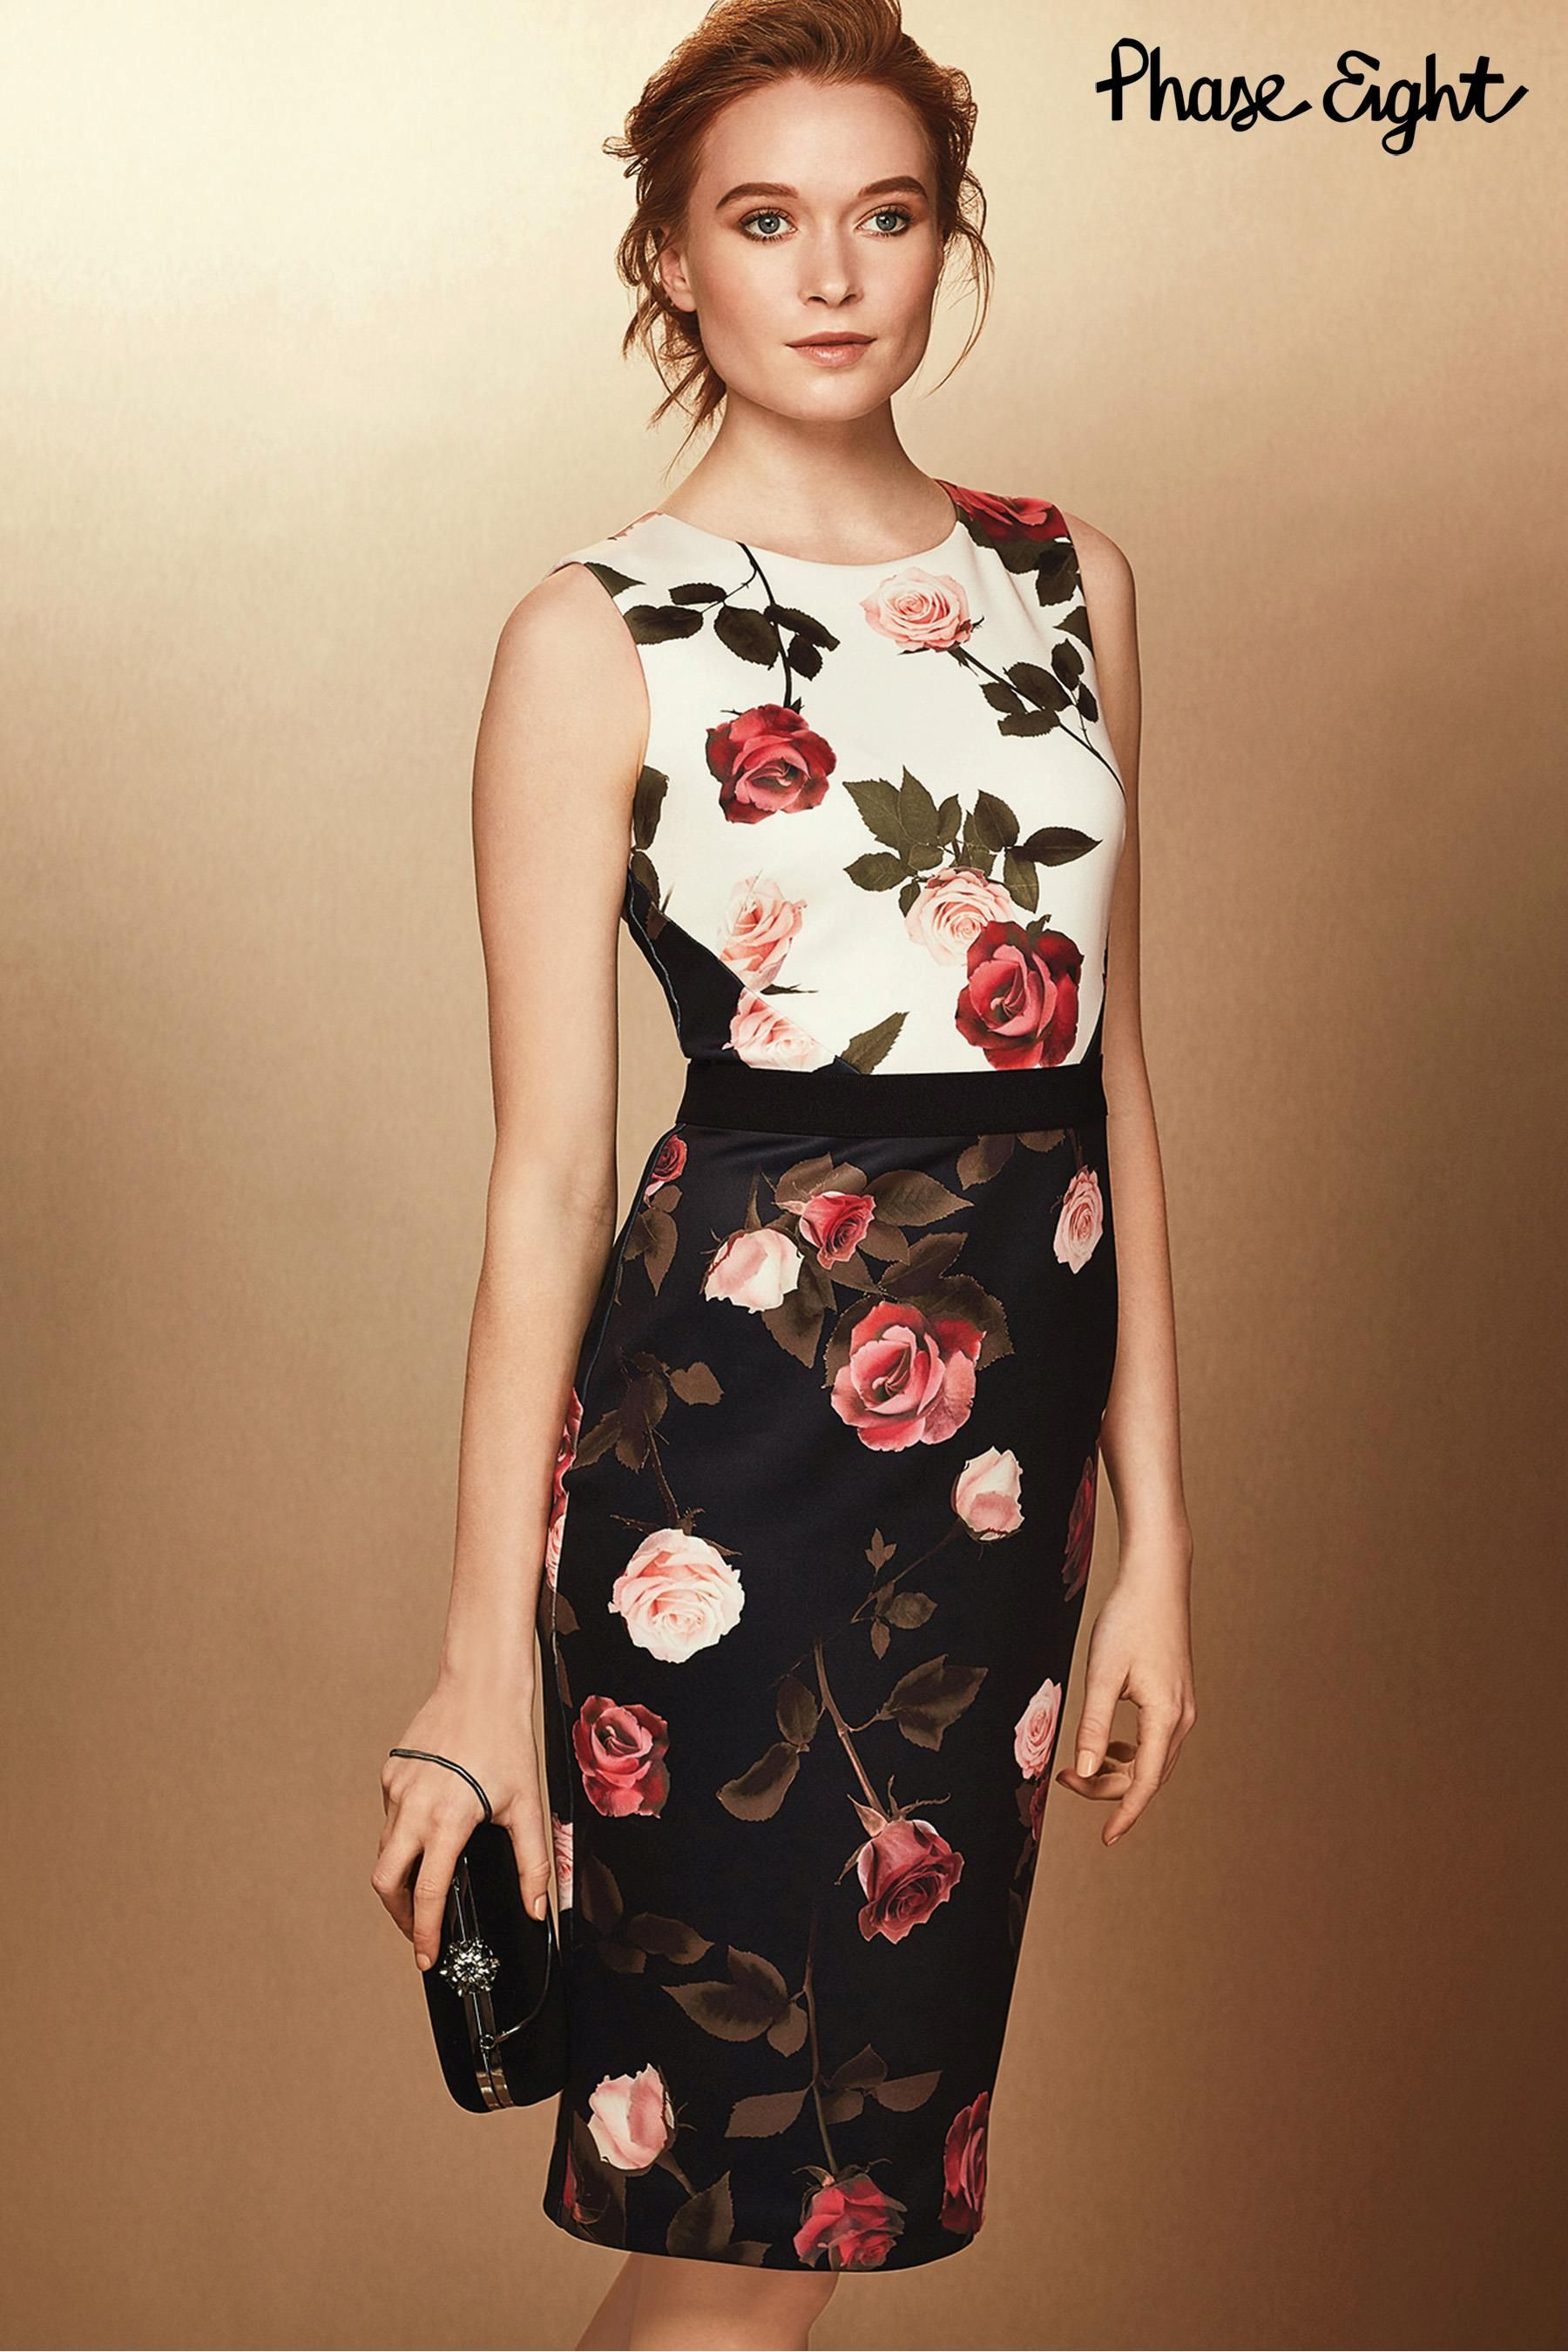 Black dress next - Buy Phase Eight Black Rose Print Dress From The Next Uk Online Shop